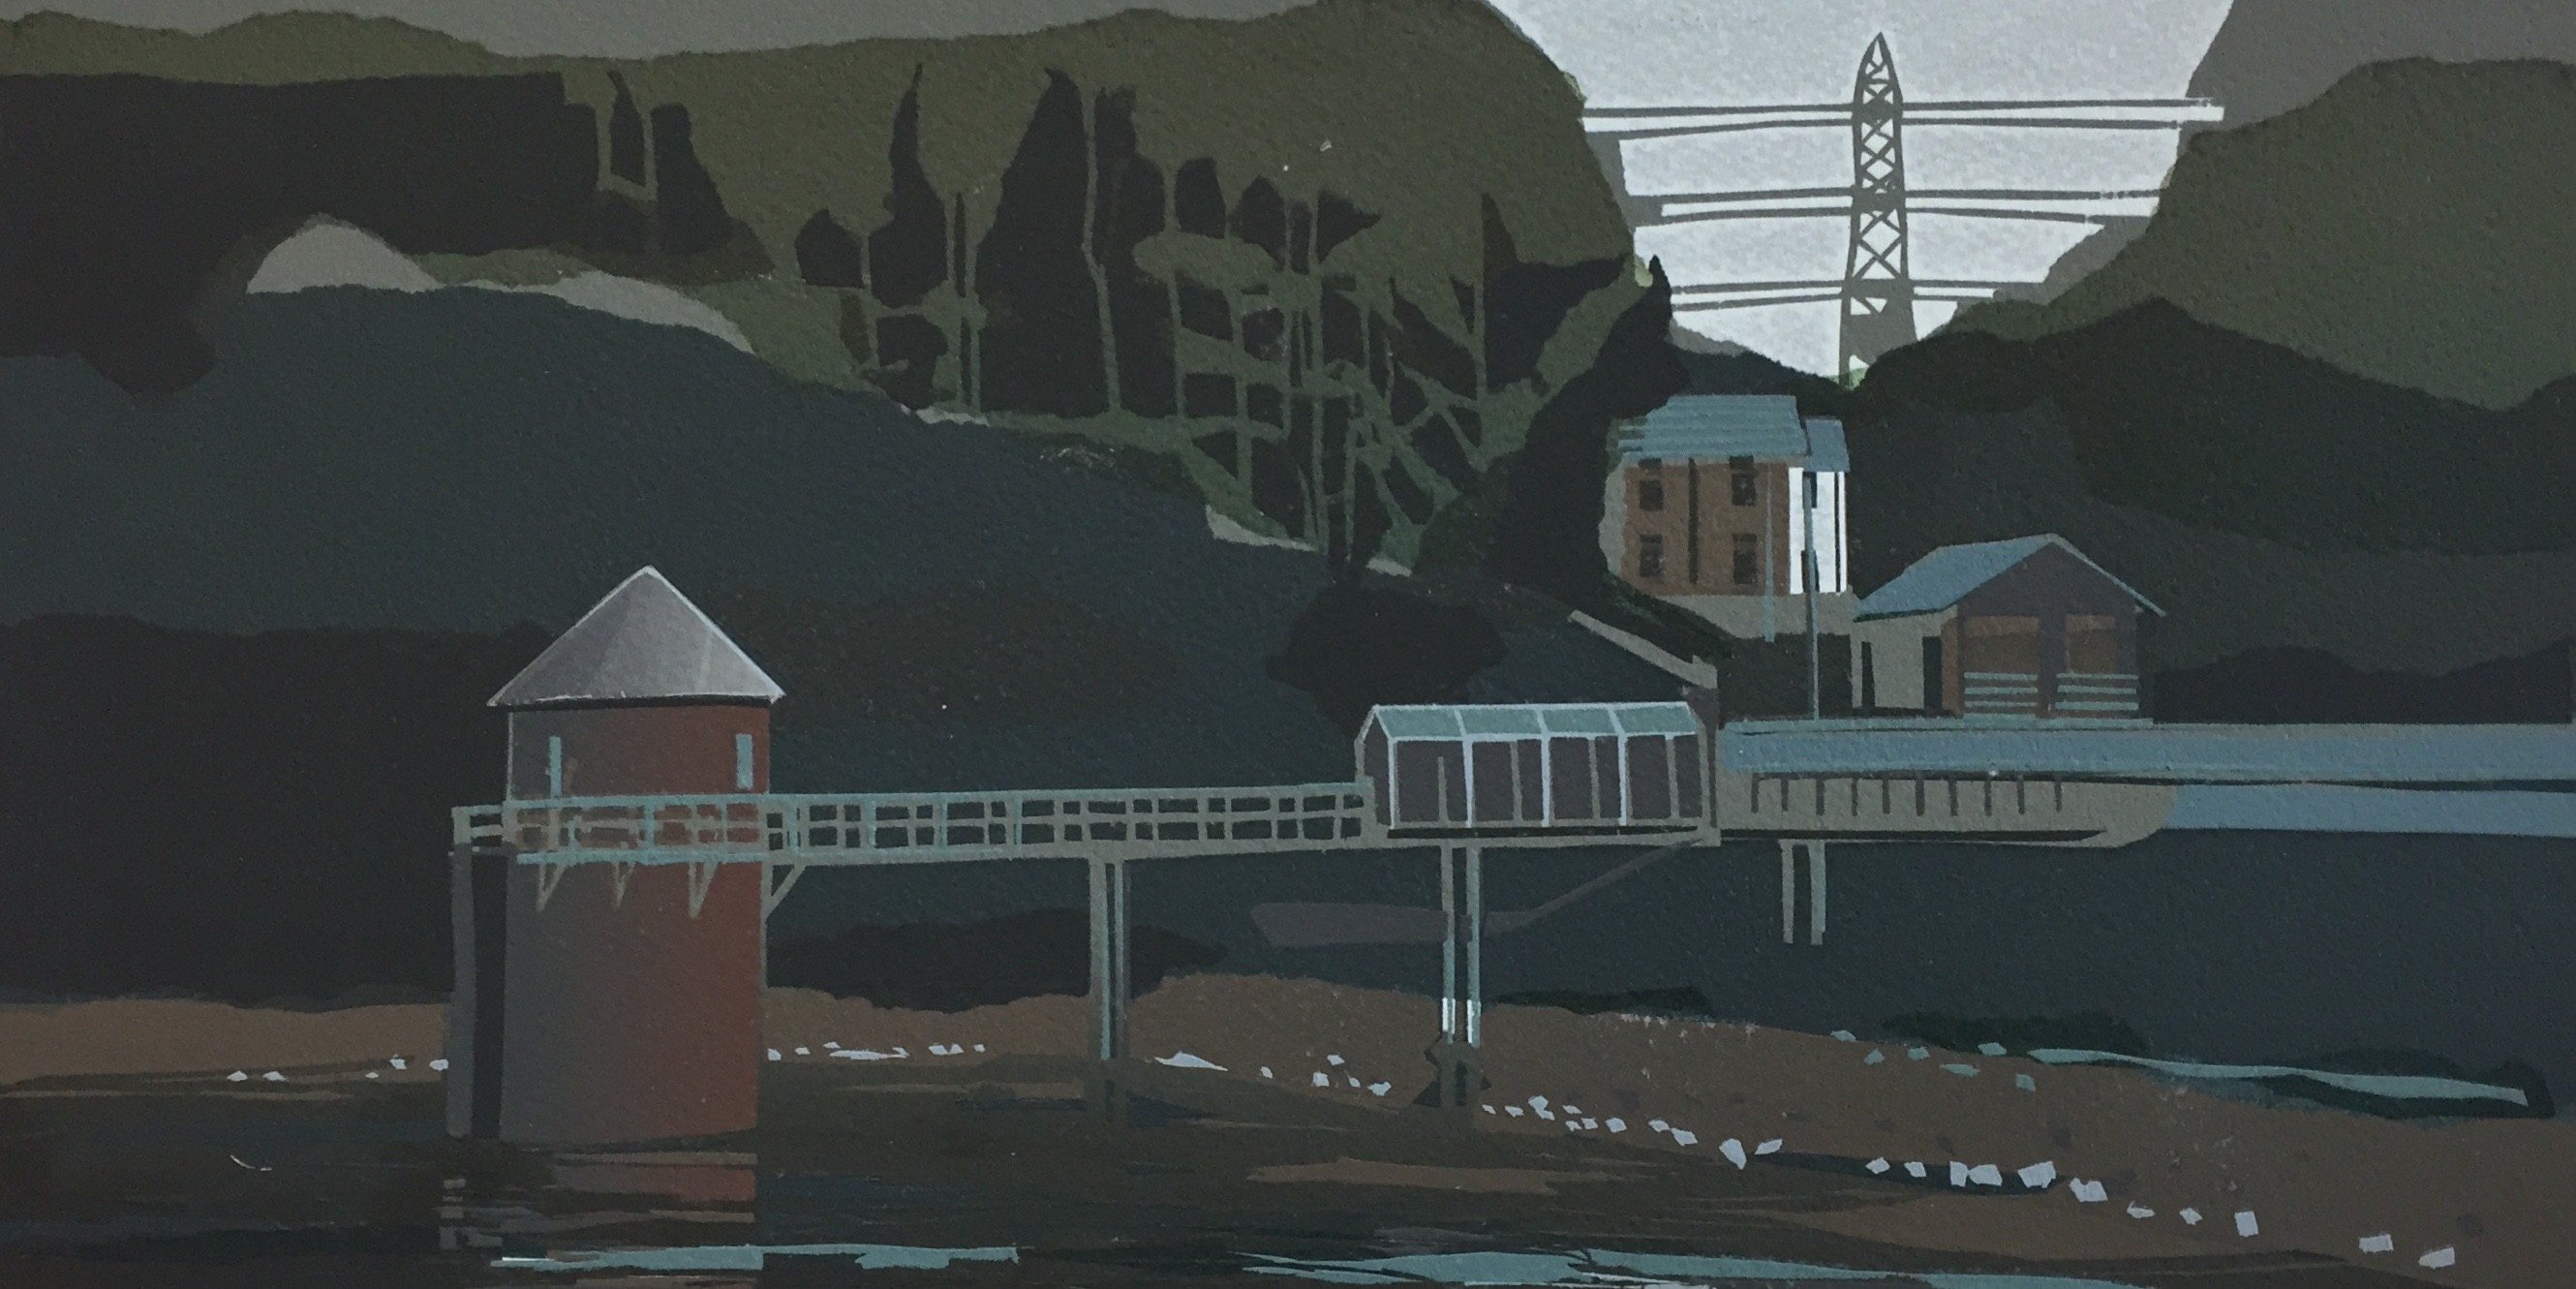 Swiss Valley   8.5x16 ins   Screenprint  2/12